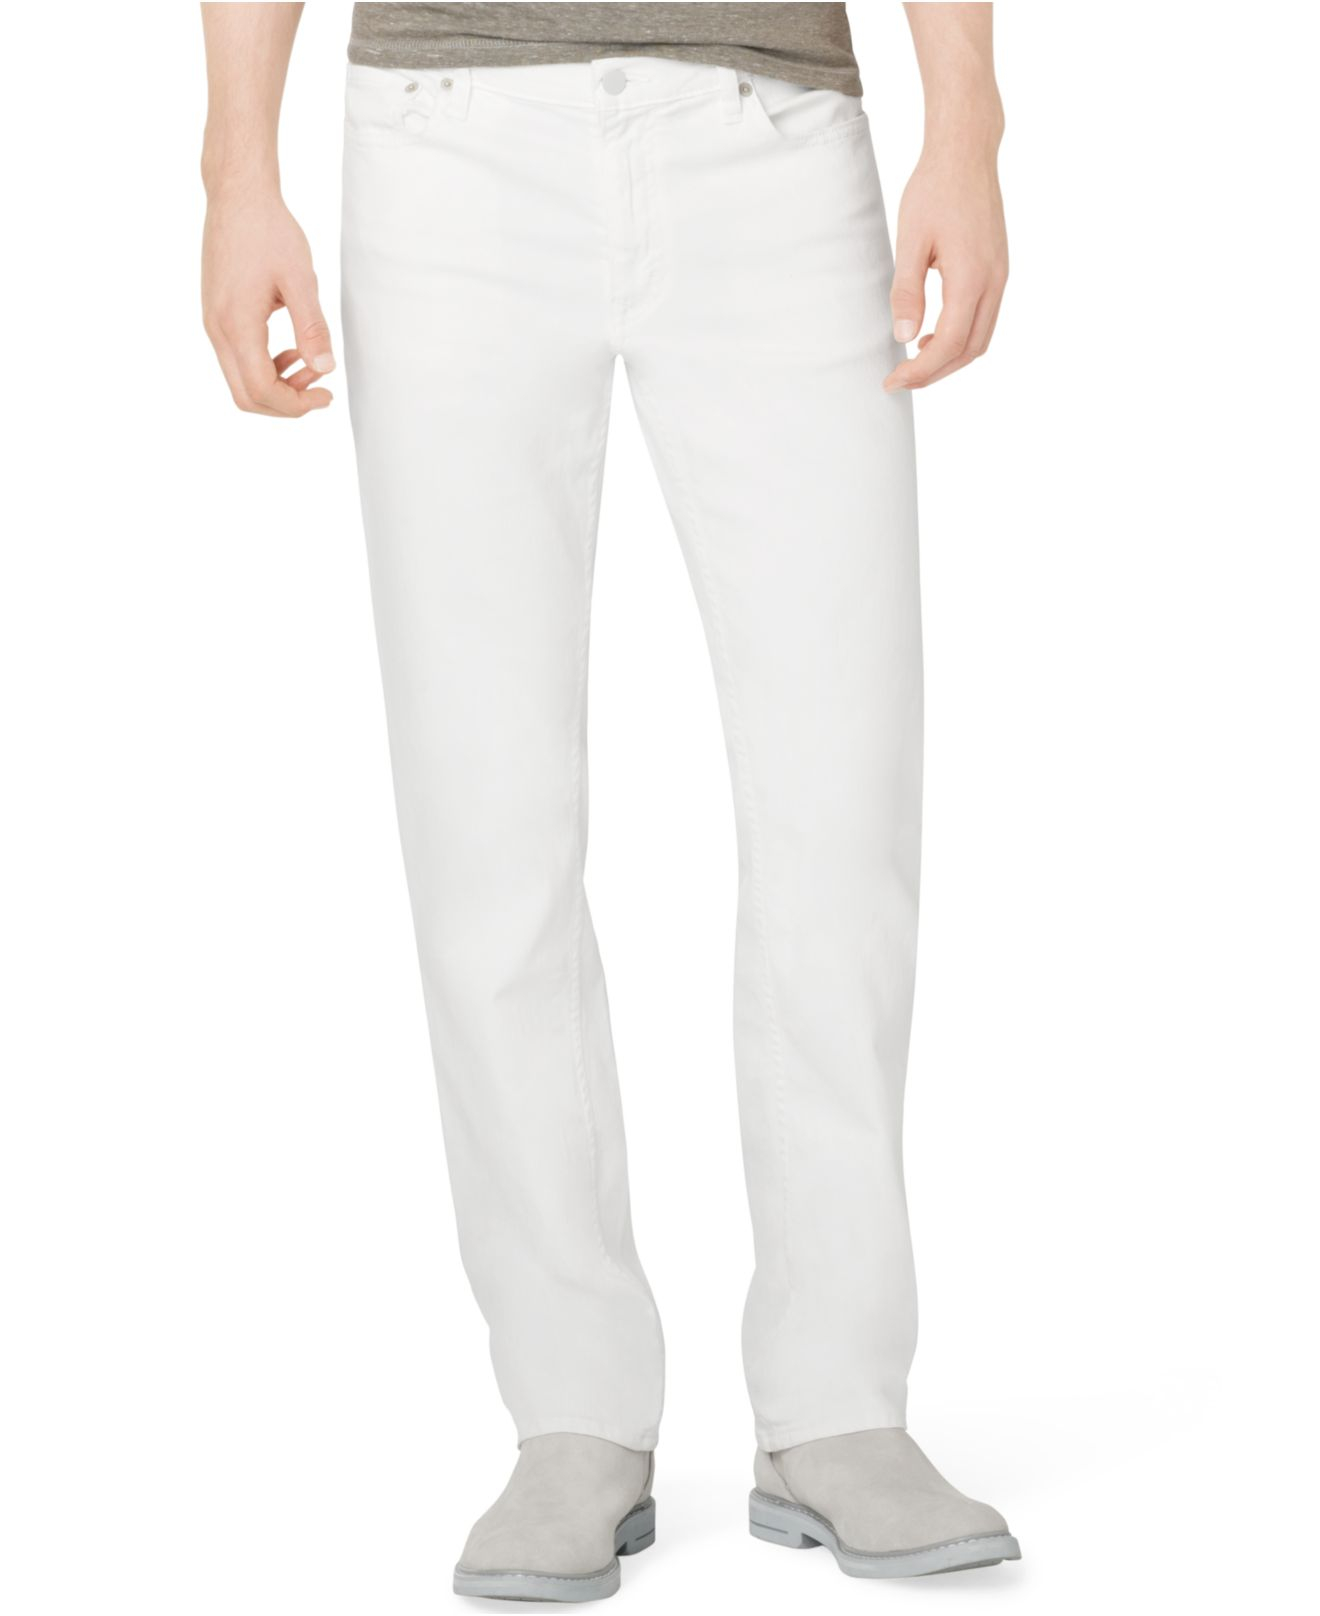 calvin klein jeans slim straight fit jeans in white for. Black Bedroom Furniture Sets. Home Design Ideas